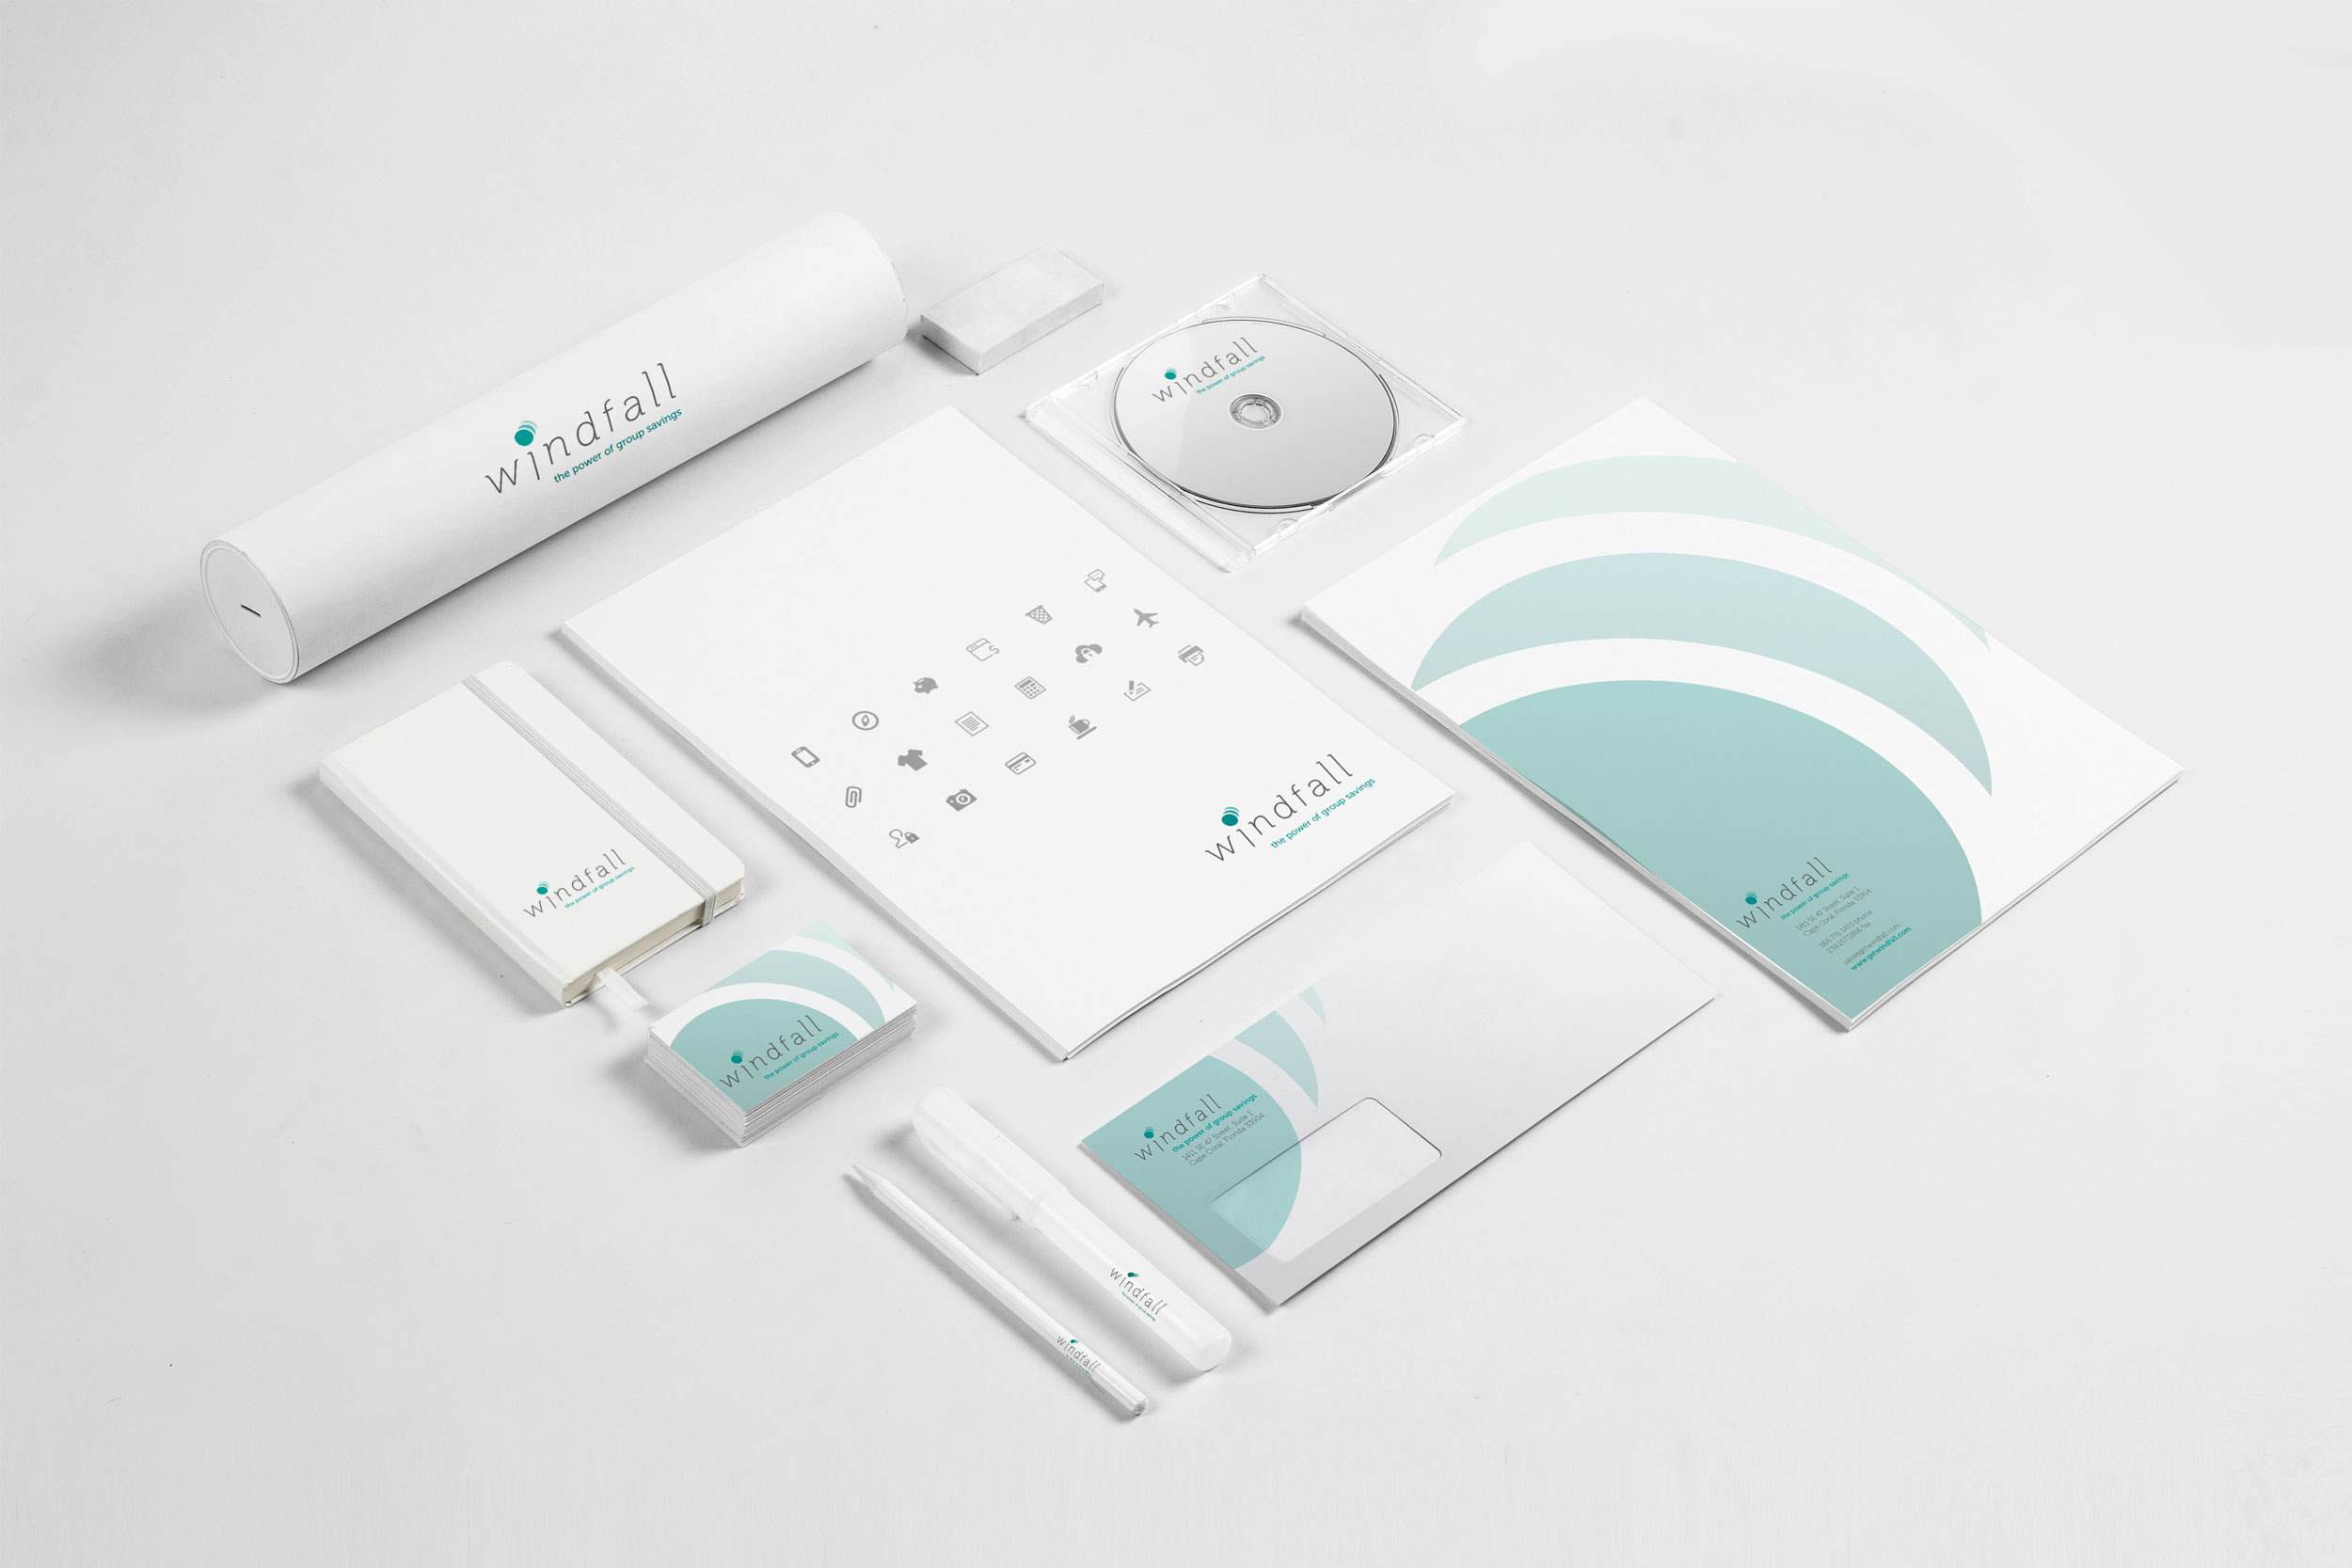 Windfall brand identity design by Be Brilliant Marketing